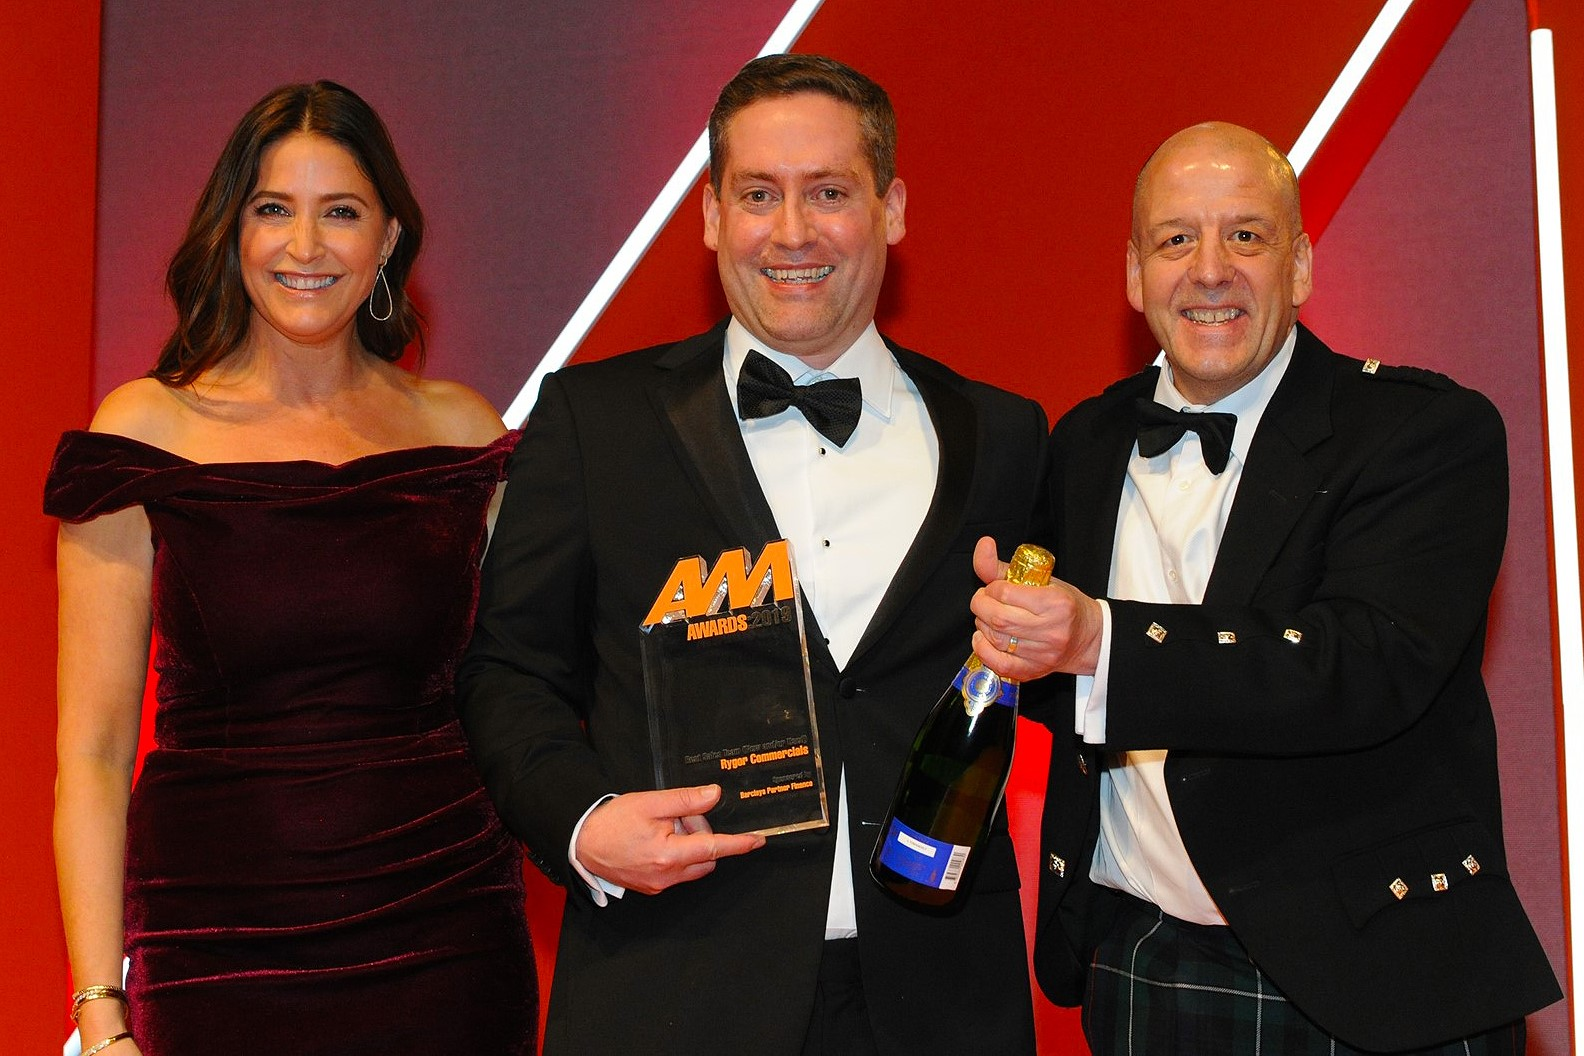 John Keogh, sales director, Rygor Commercials, collects the award from Alex Watt, regional sales  director, Barclays Partner Finance, right, and host Lisa Snowdon, left